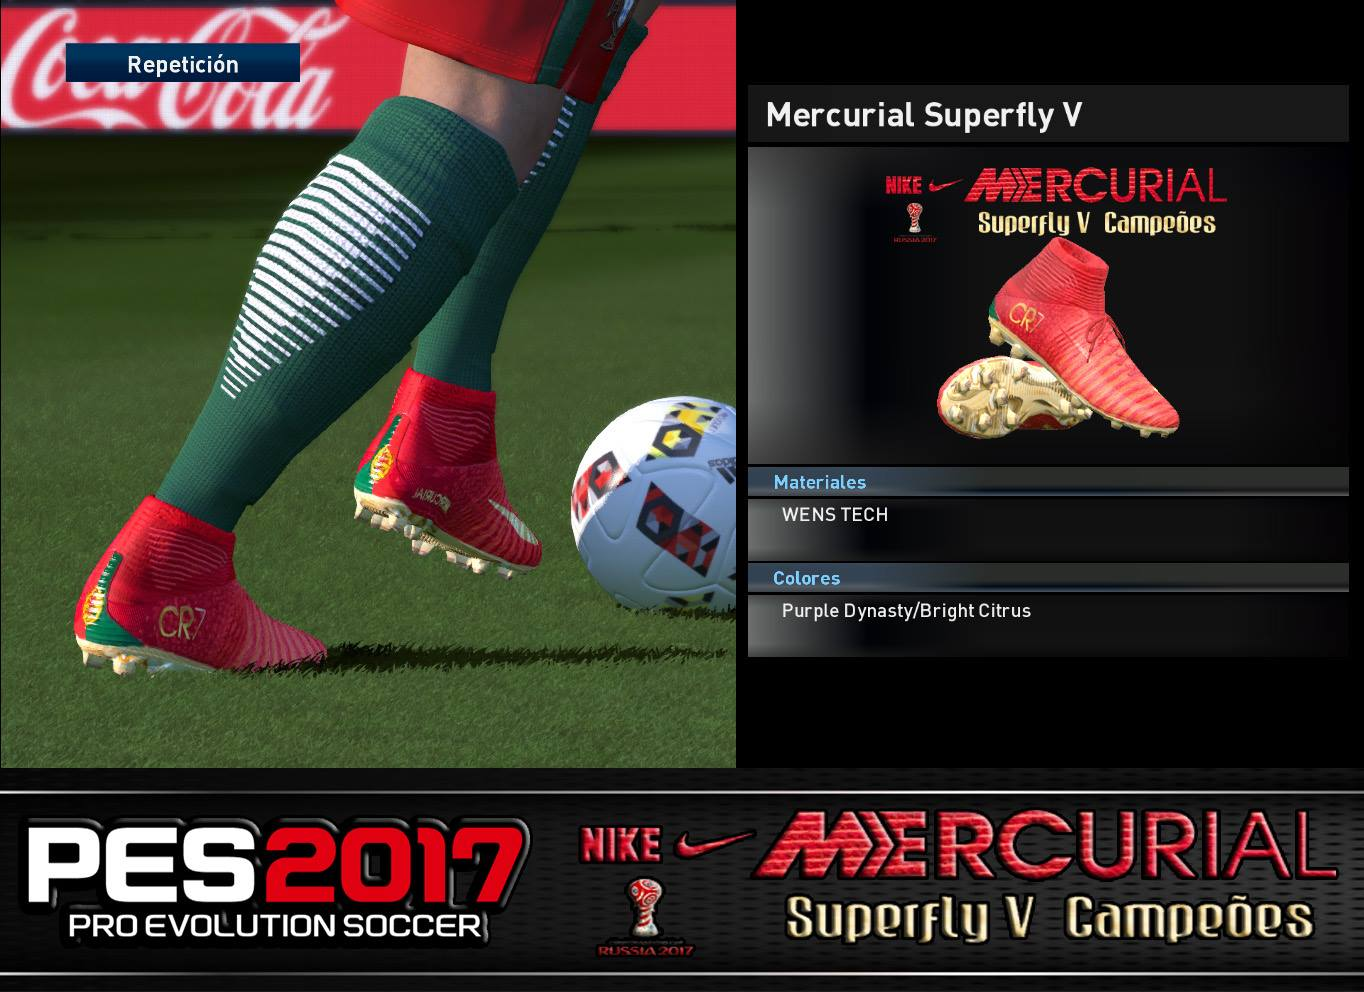 PES 2017 Nike Mercurial Superfly V Cristiano Ronaldo Campeões Boots by Jonathan Facemaker